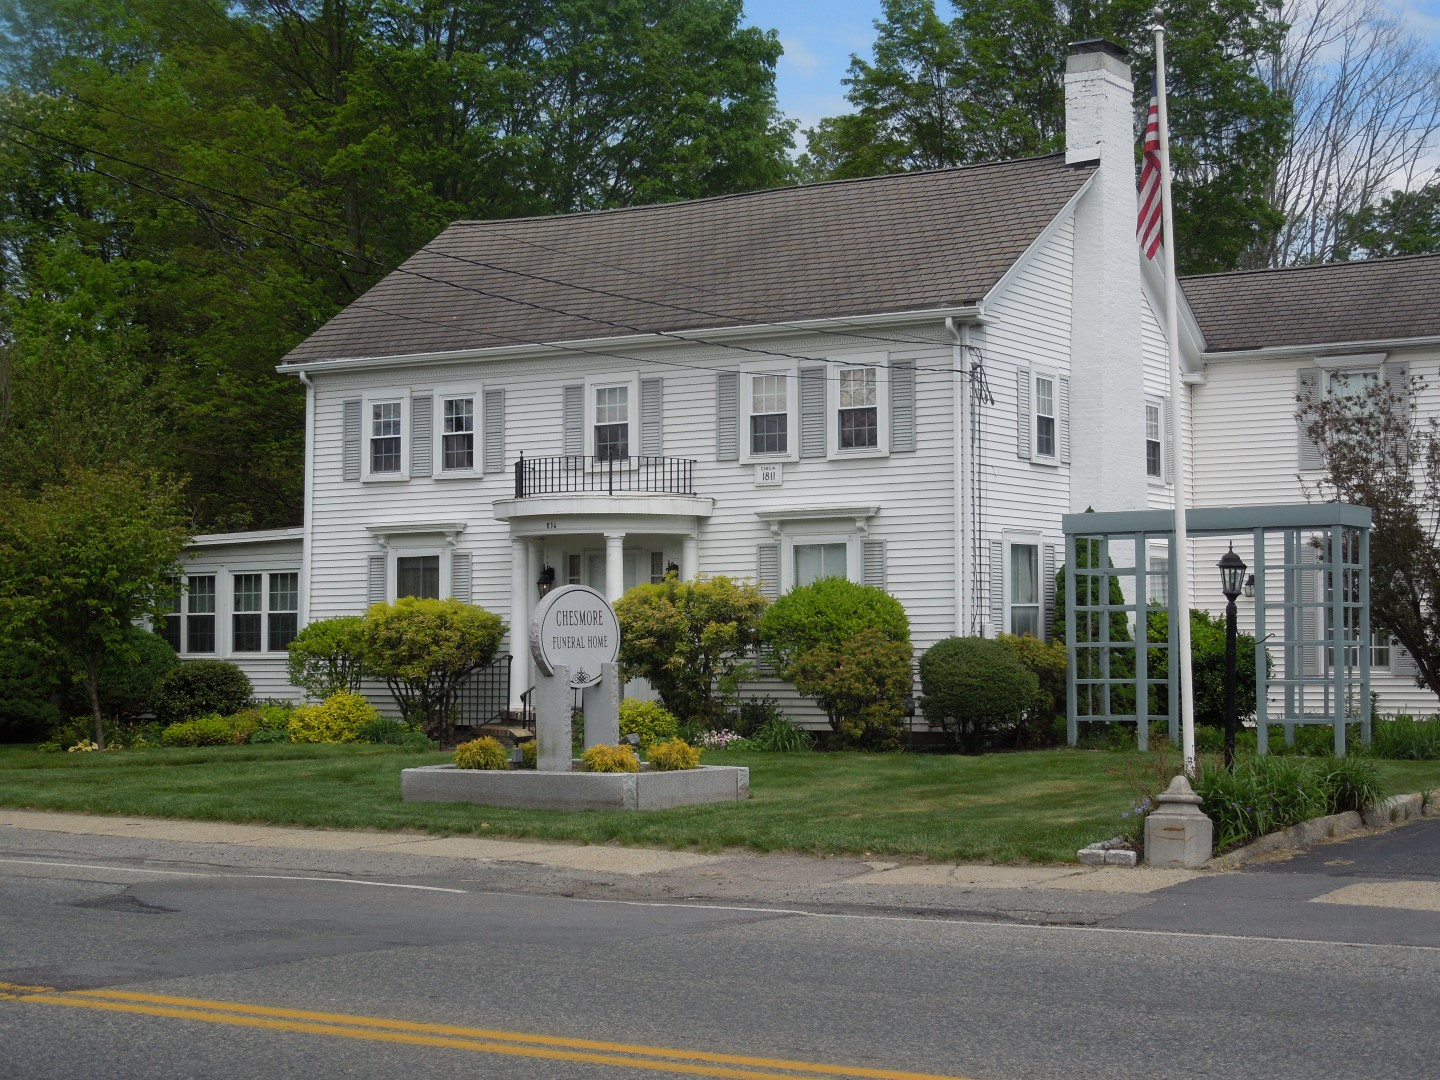 Chesmore Funeral Home - Holliston, MA